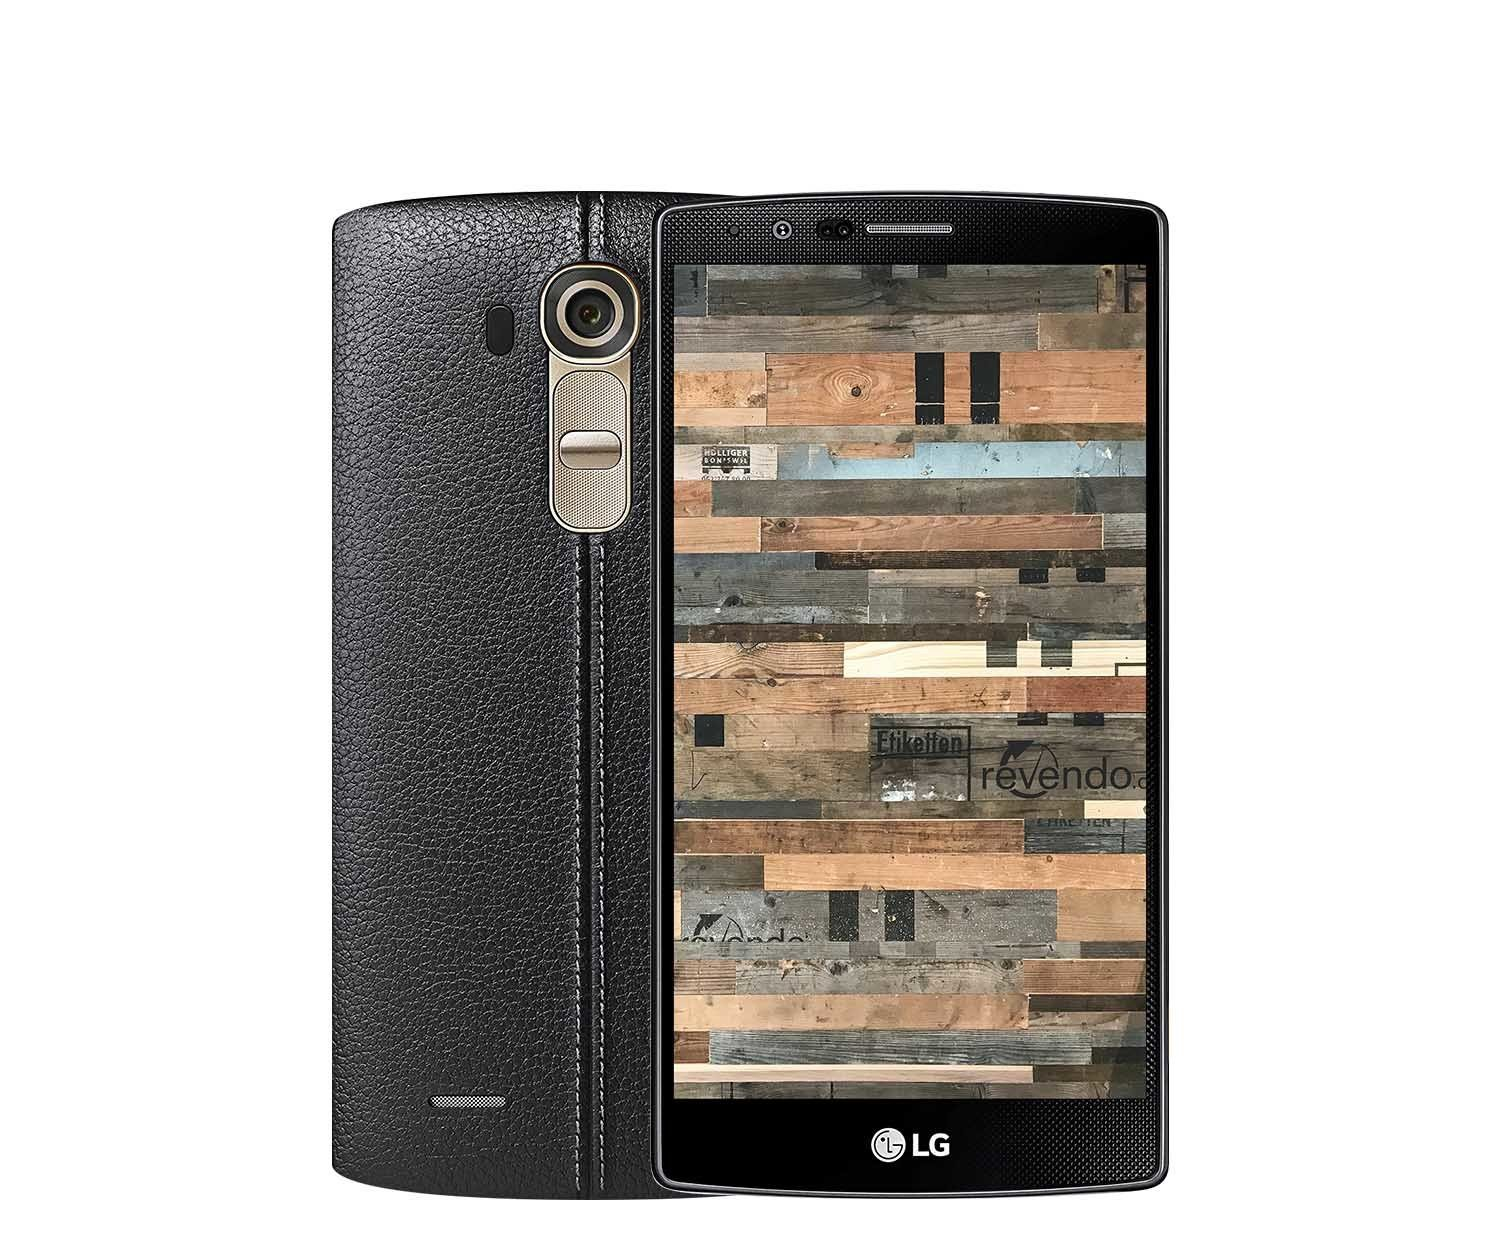 lg g4 32 gb leder schwarz. Black Bedroom Furniture Sets. Home Design Ideas